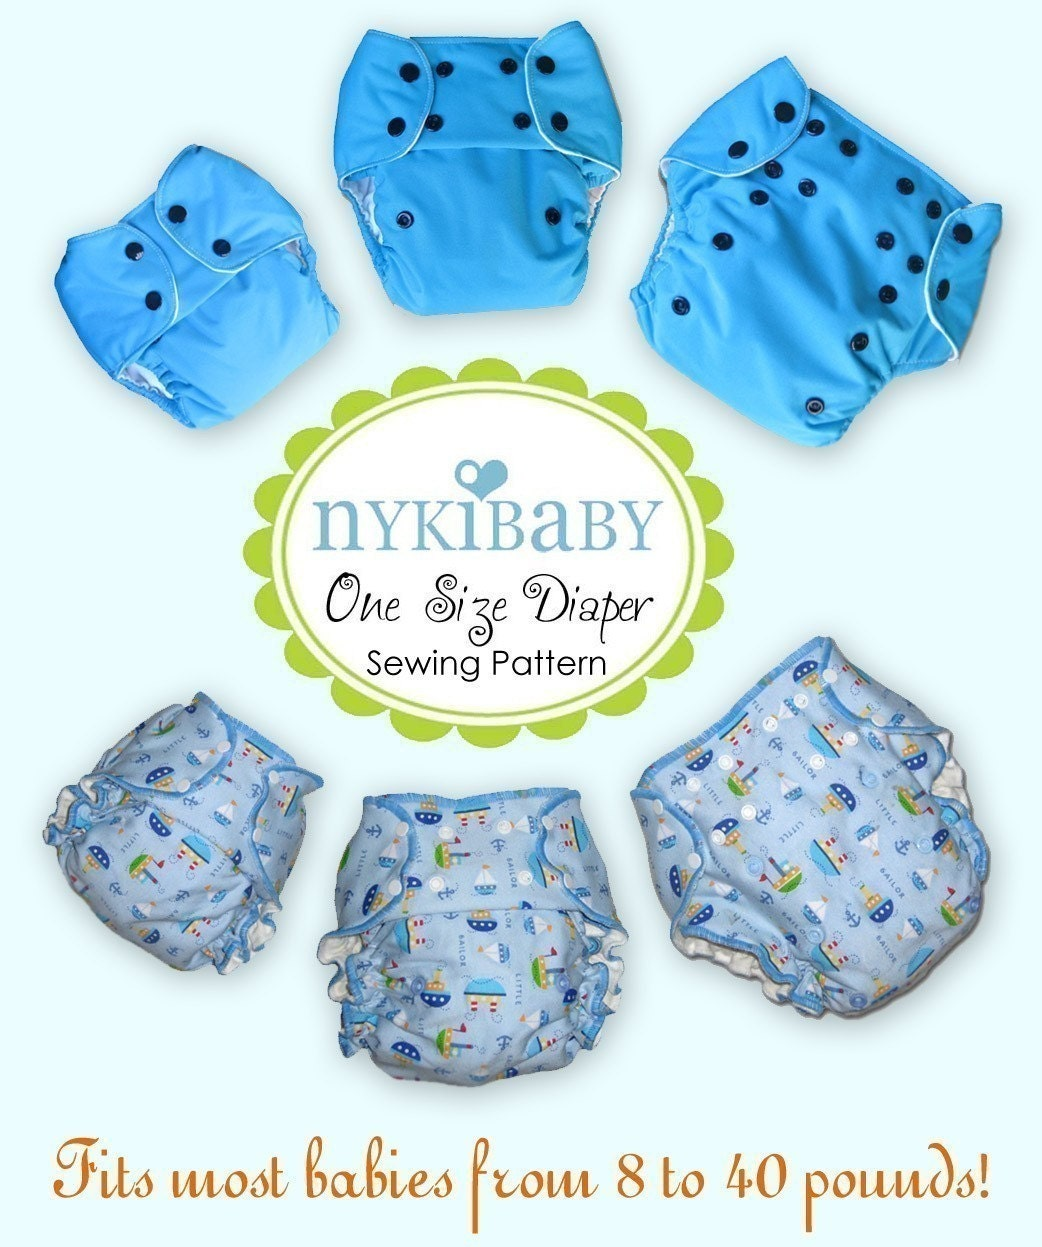 Sew Your Own Diapers: Sew Your Own Diapers